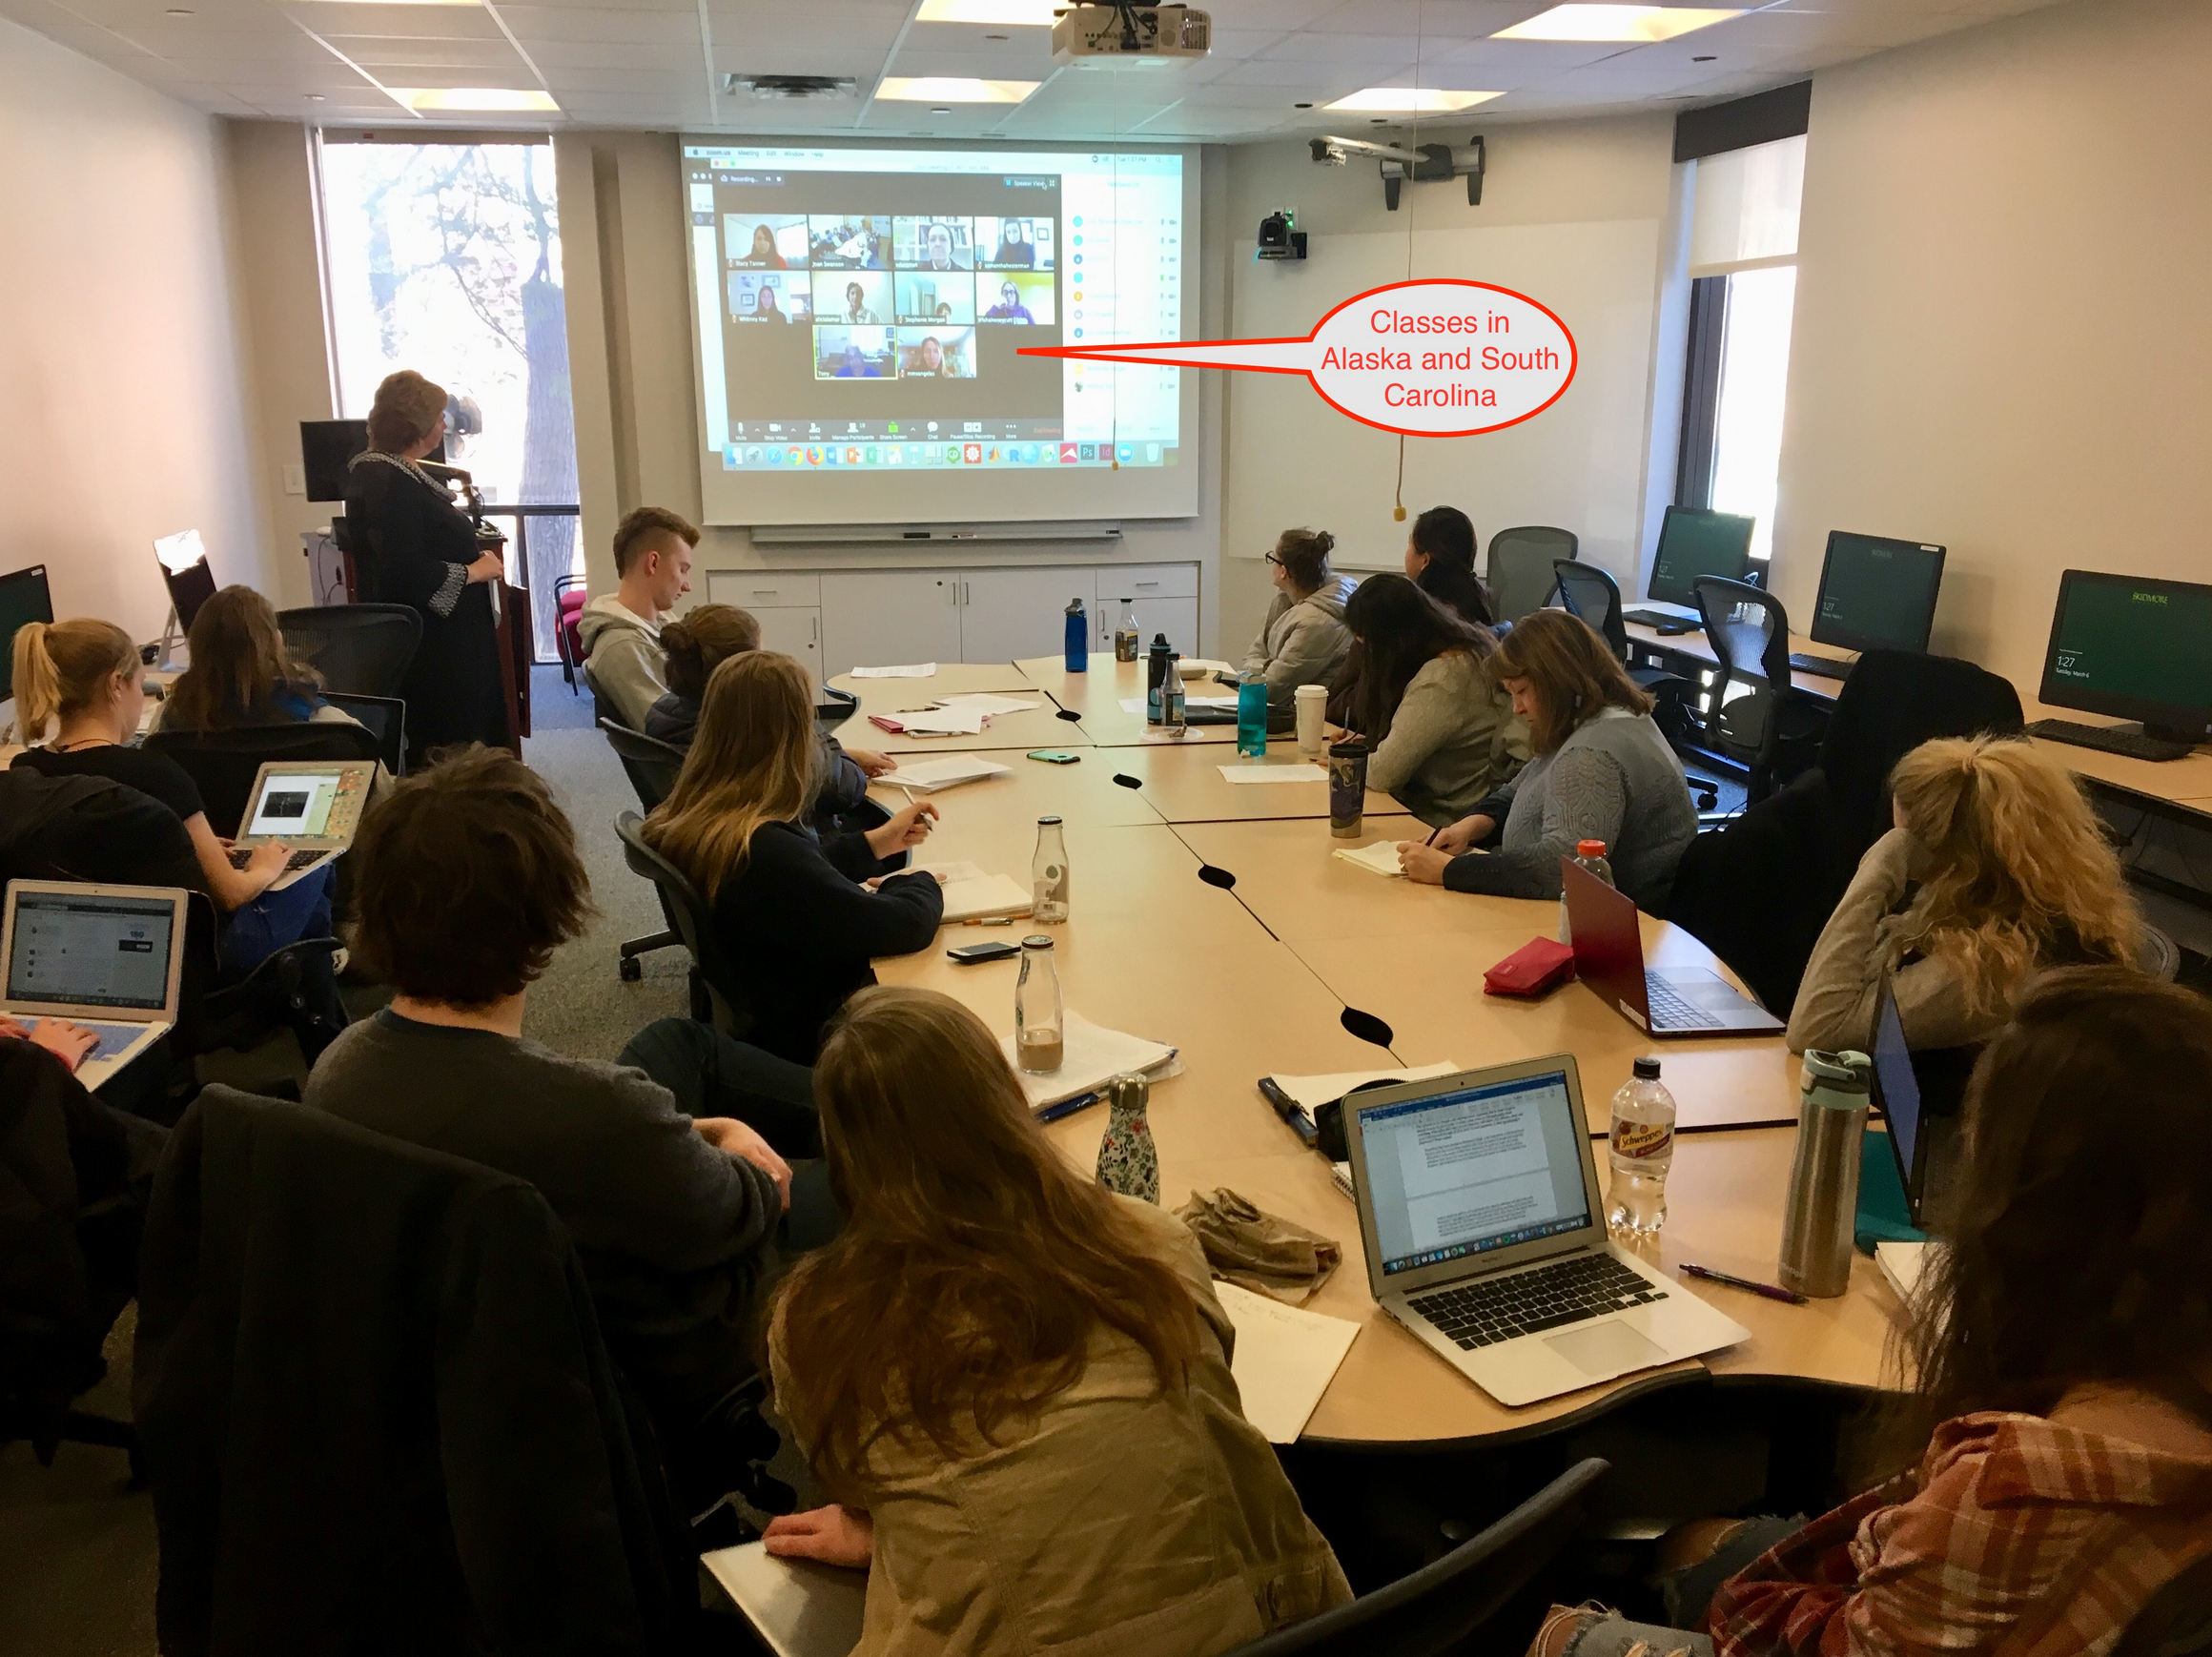 Students connect with many different parties at once, including students in Alaska and South Carolina, over video-communication in real time.